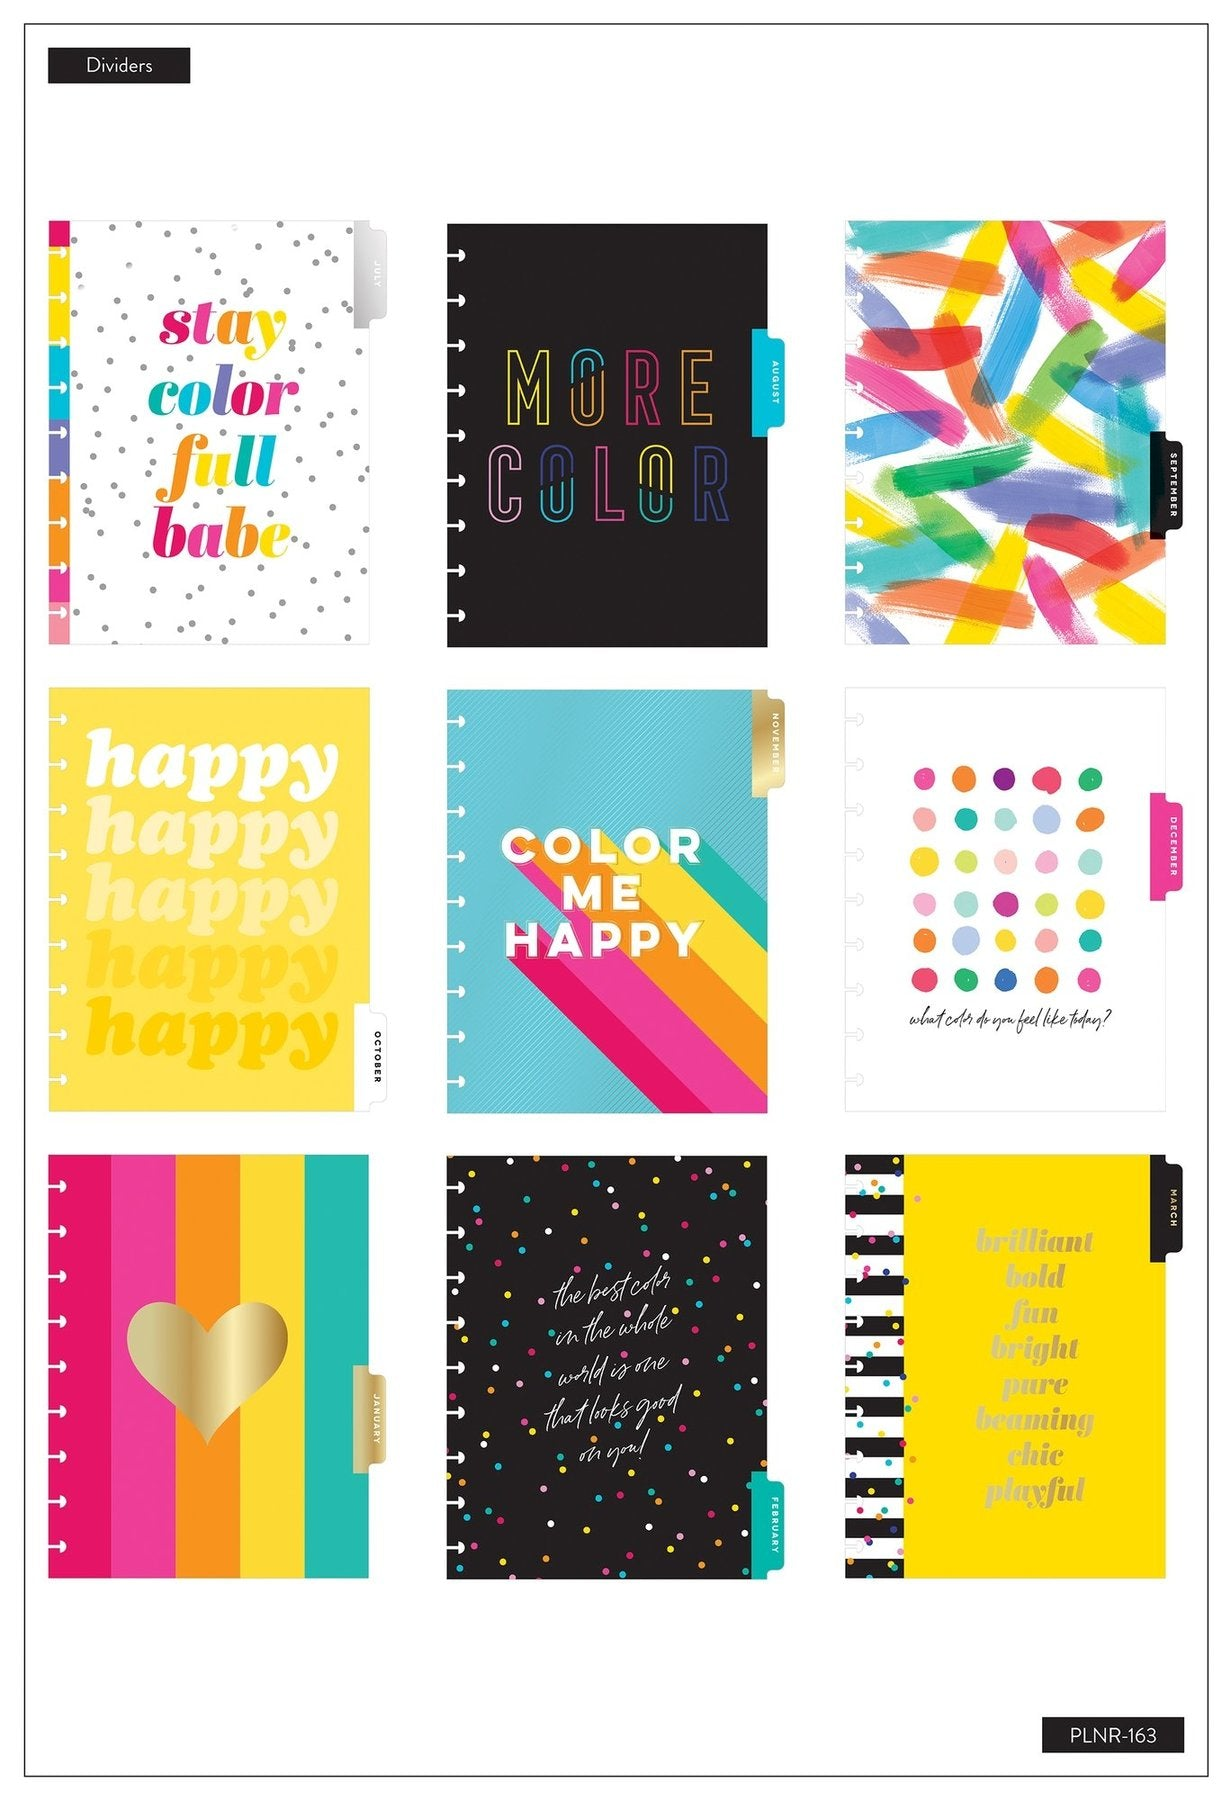 Agenda Happy Planner Clásica Lined Vertical - Color Me Happy - 18 Meses 2020-2021